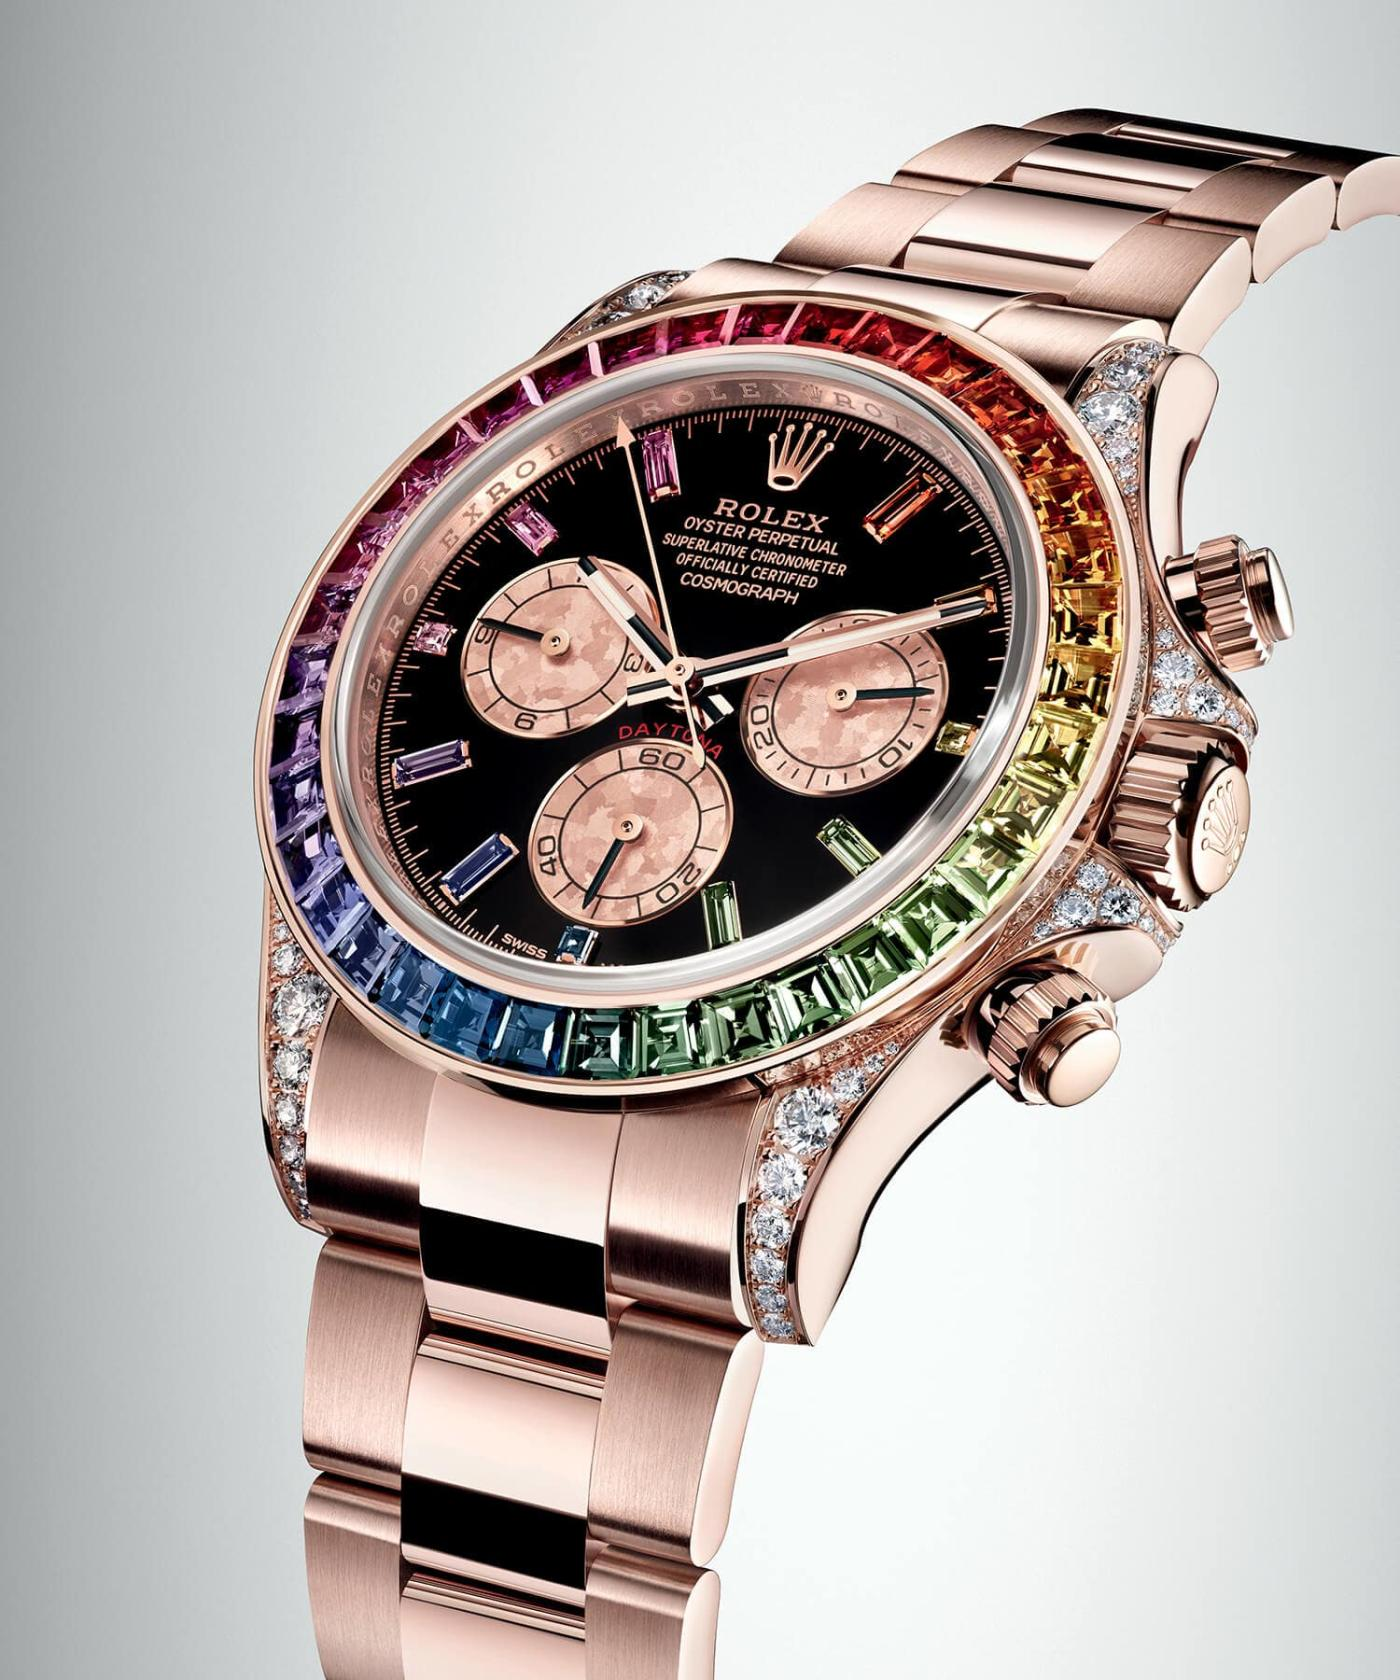 Oyster Perpetual Cosmograph Daytona by Rolex